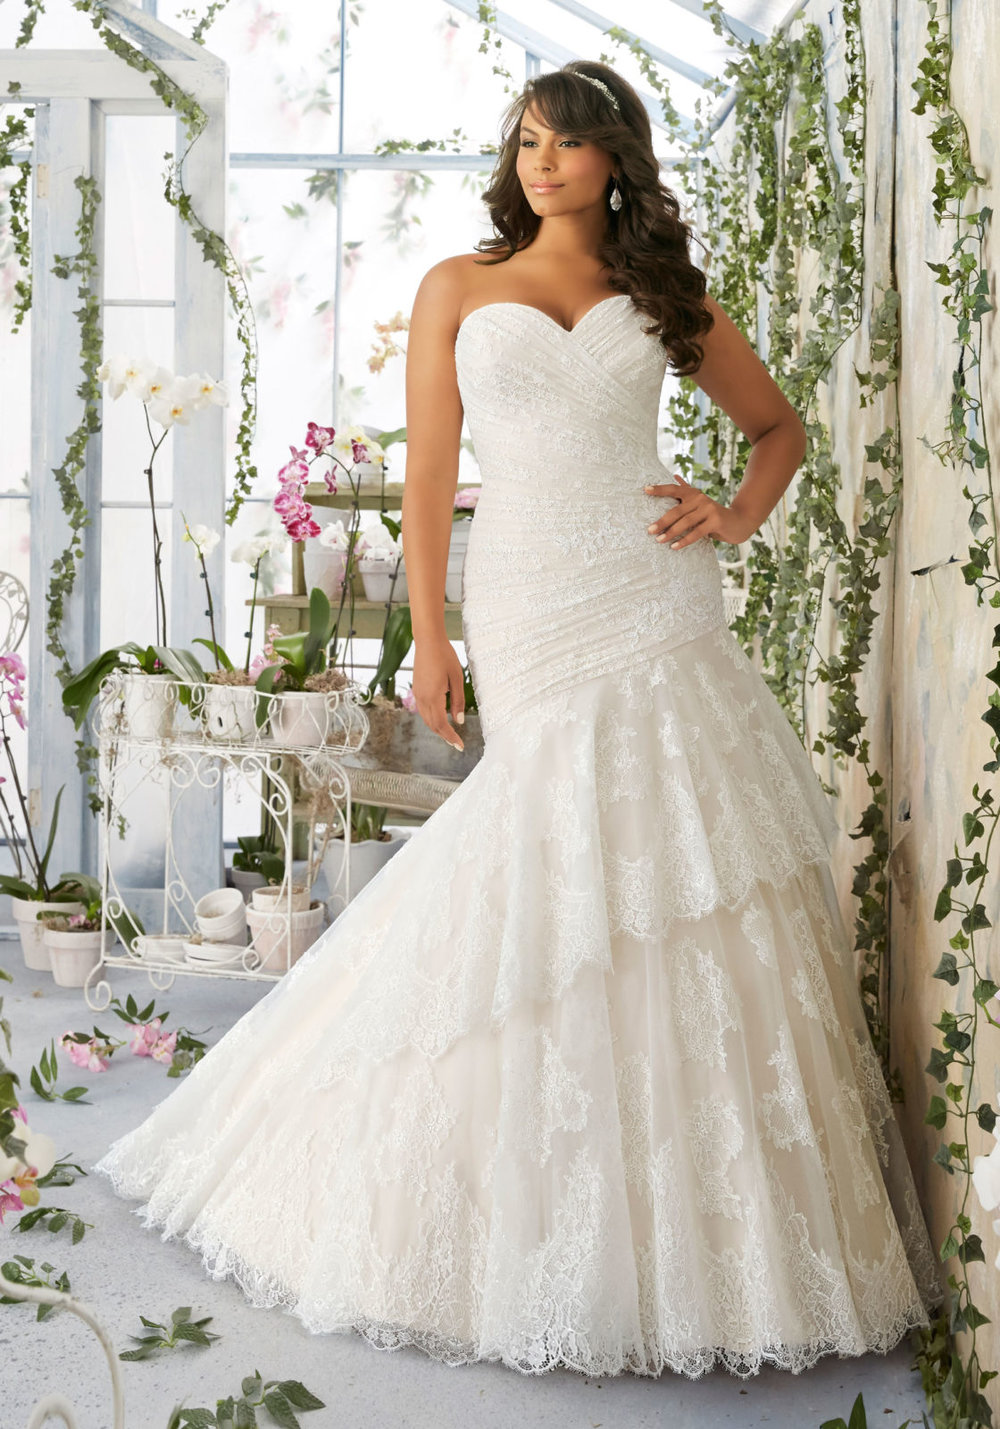 Asymmetrically Draped Chantilly Lace Wedding Dress by Morilee